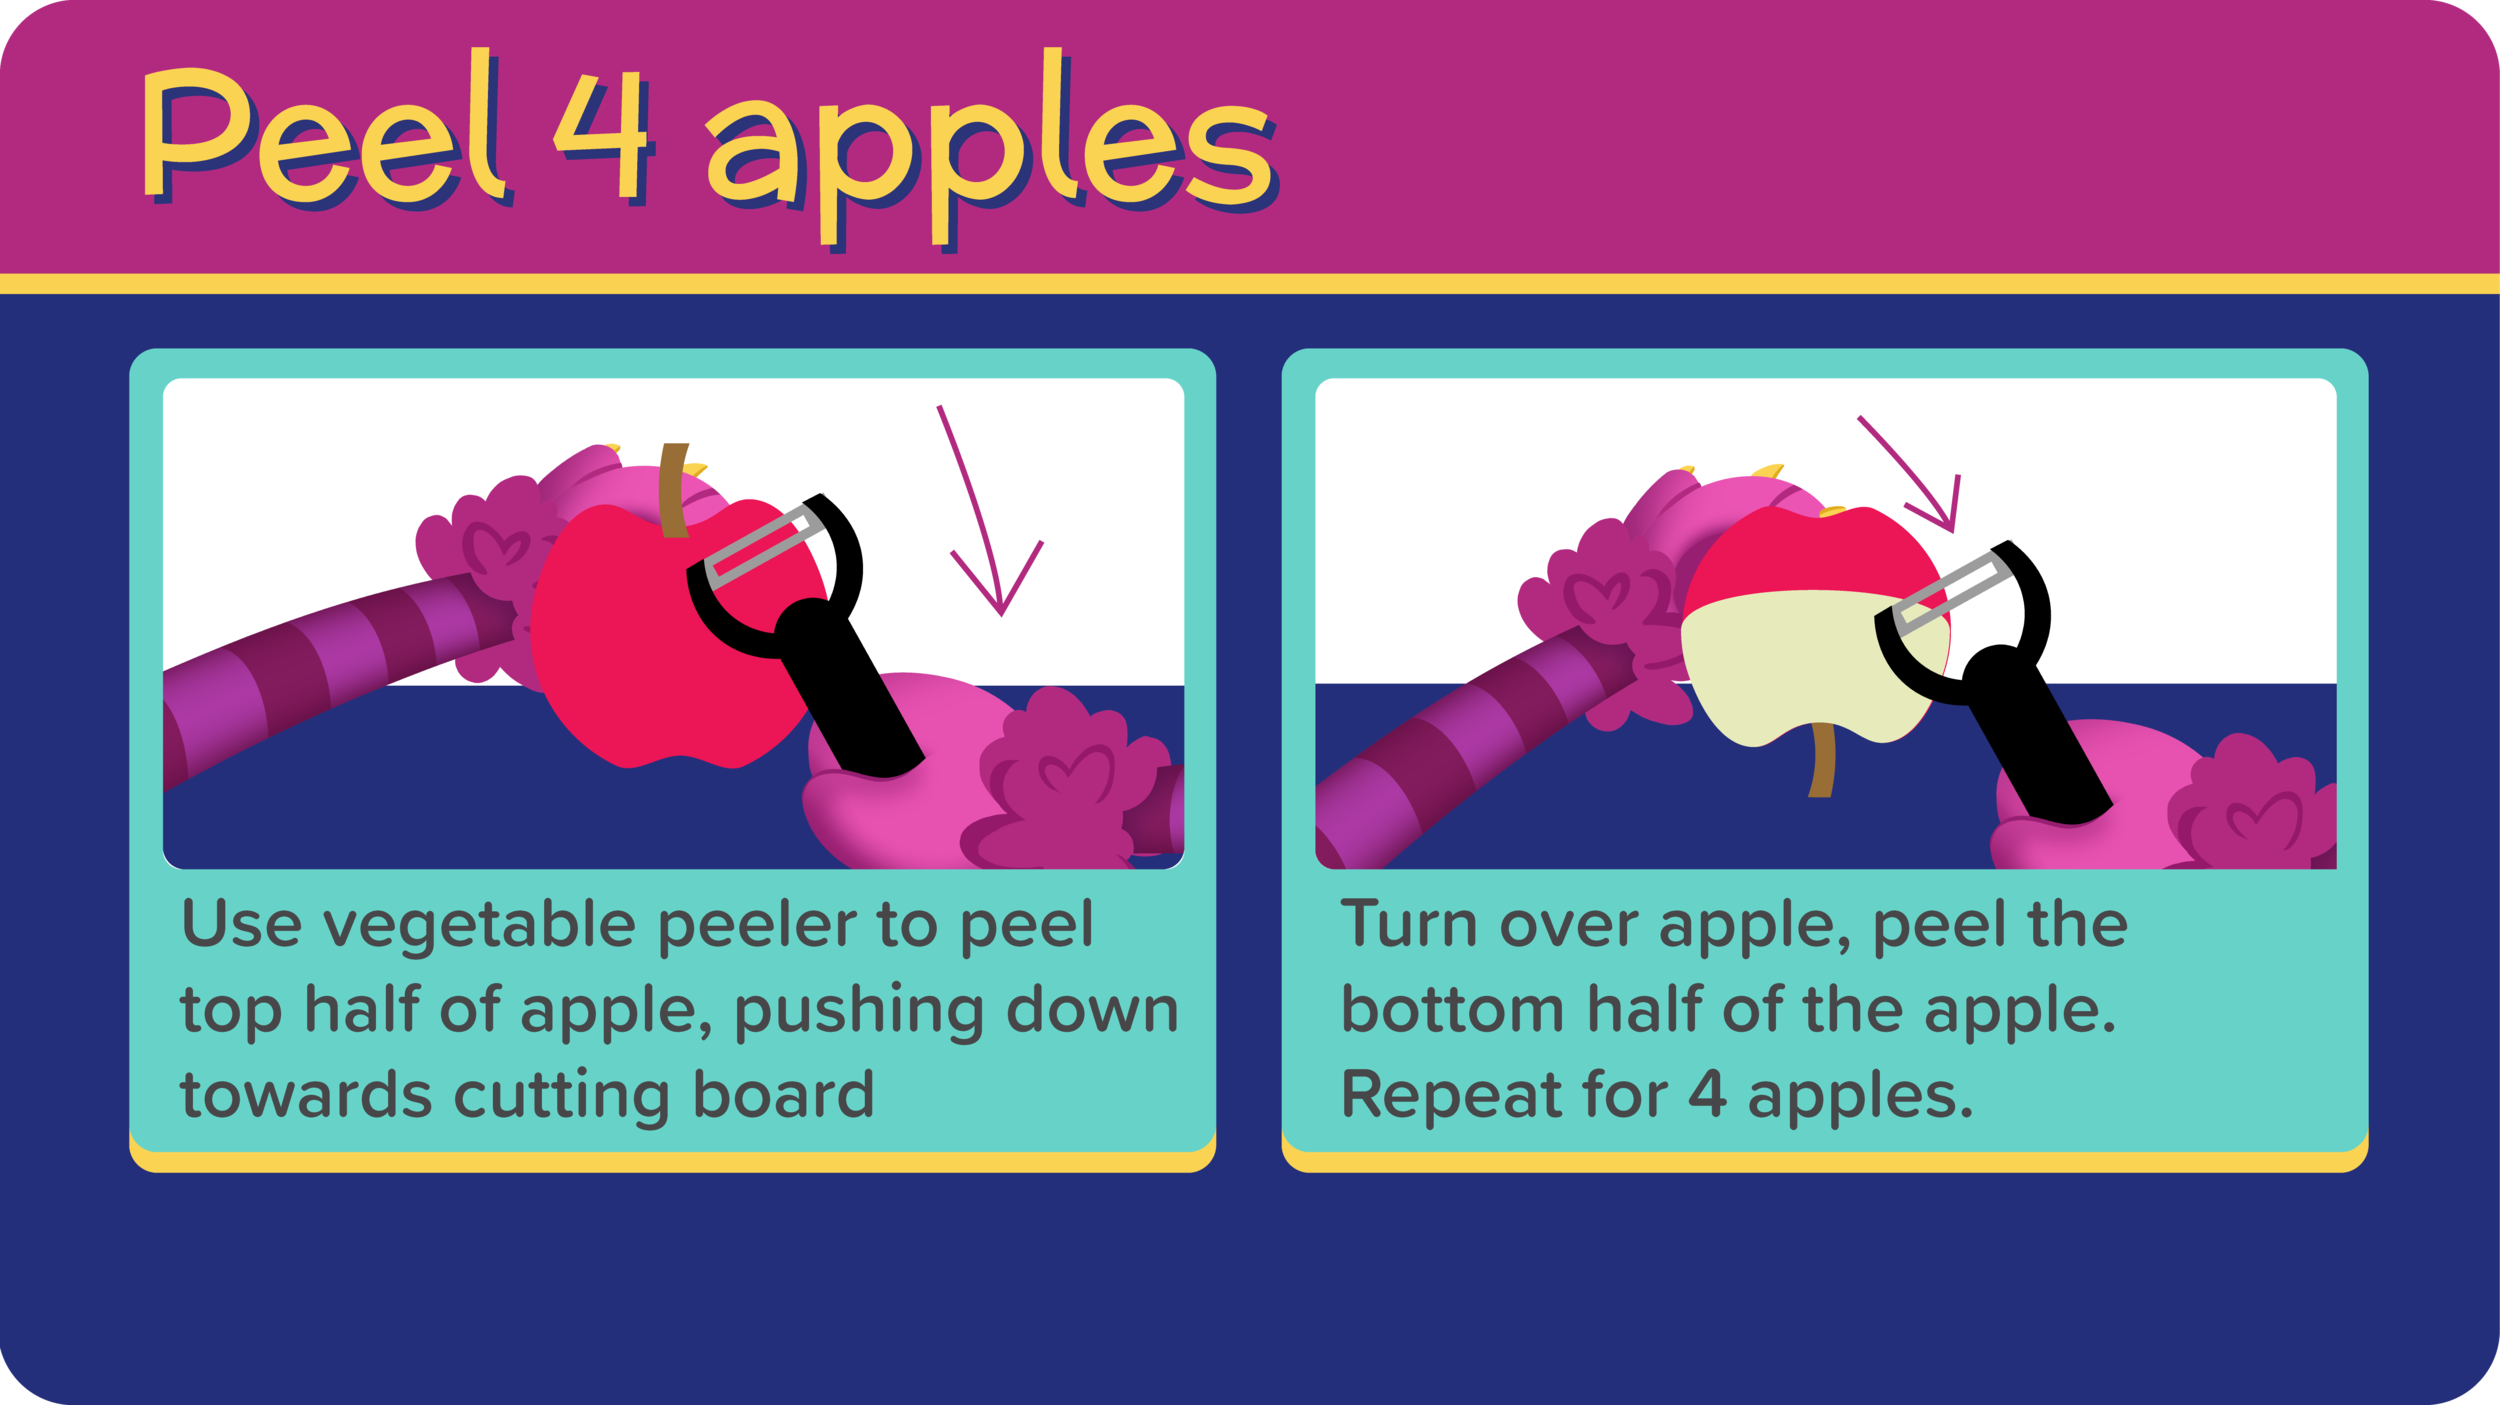 07_AppleSauce_Peel Apples-01.png